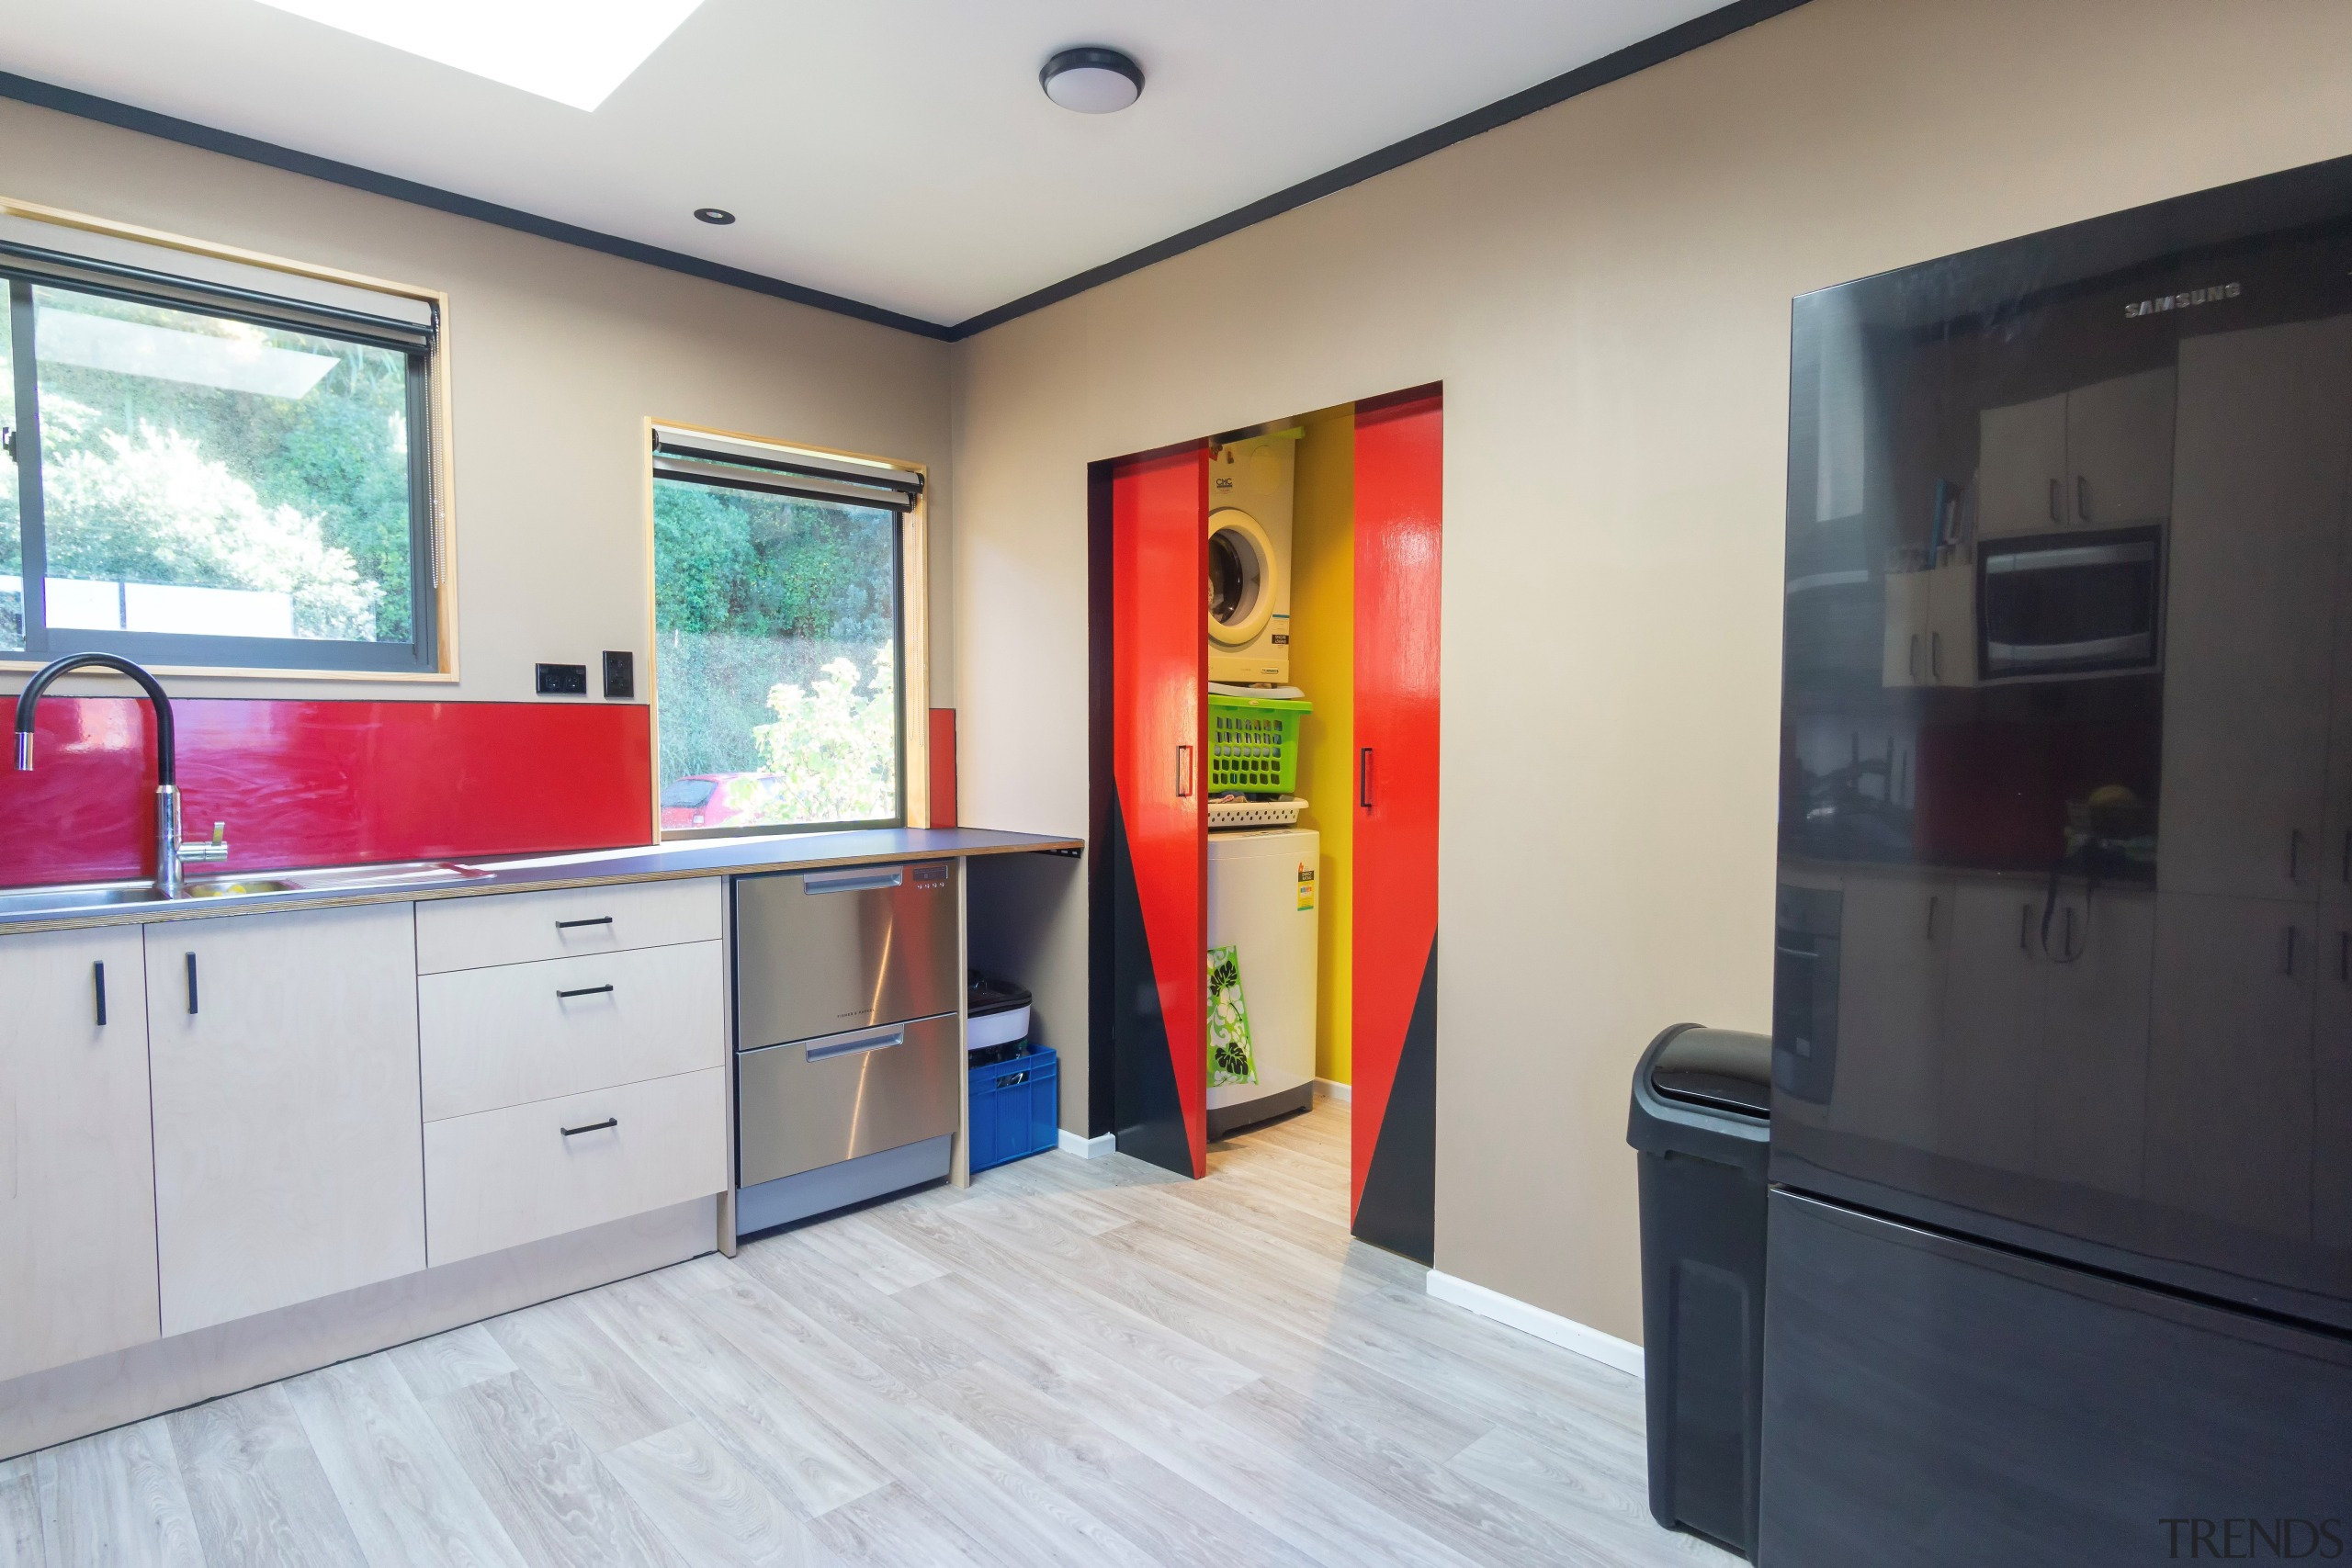 On this renovation, Resene Zylone Sheen was used gray